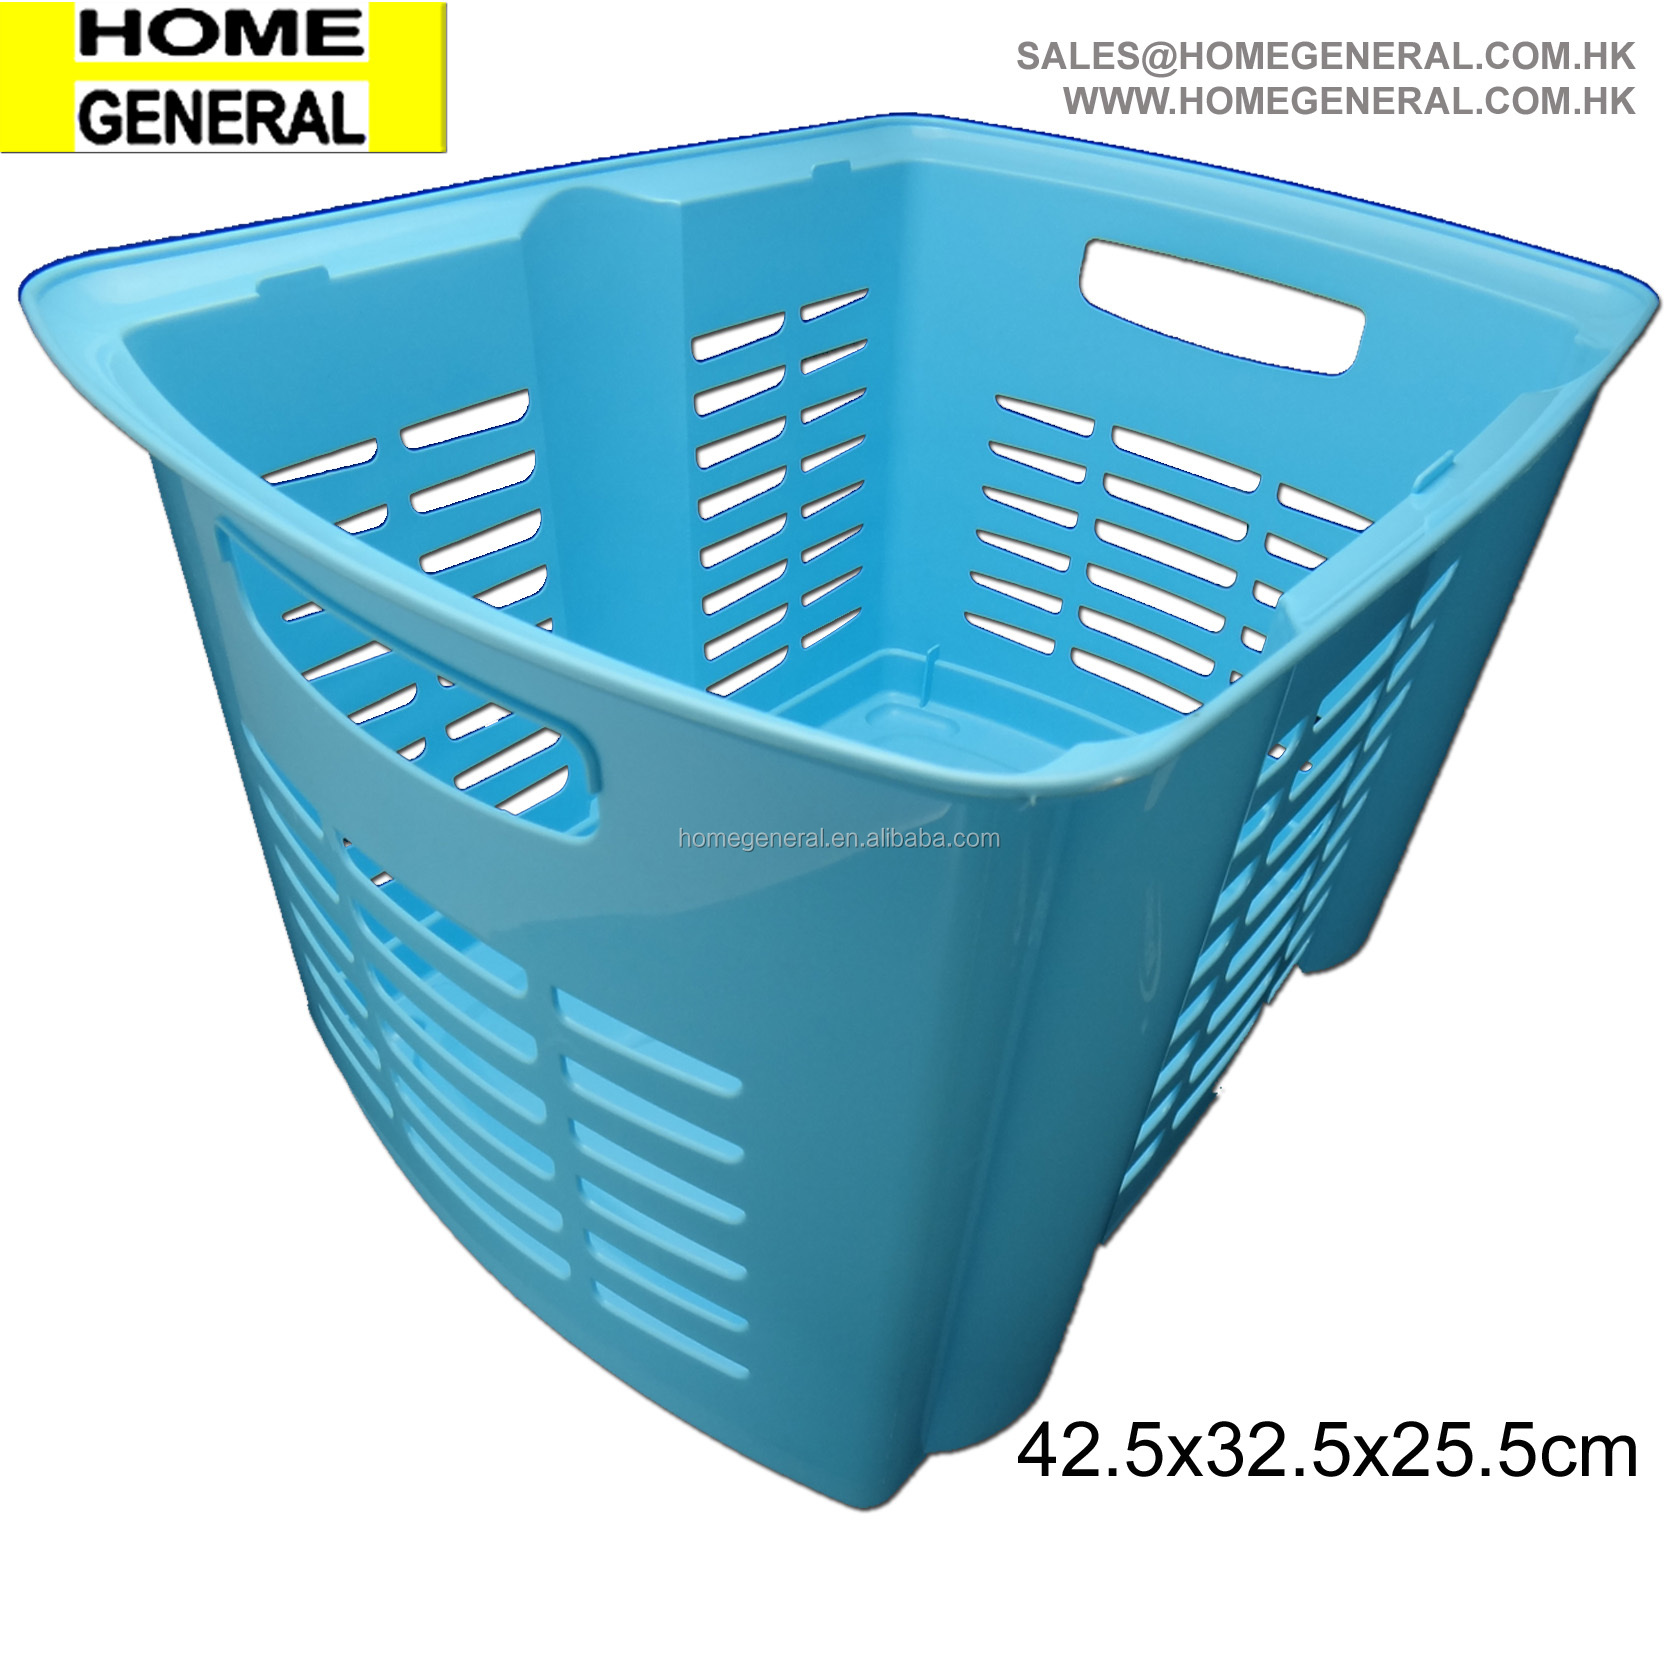 BASKET GENERAL STACKABLE BASKET STORAGE BASKET PLASTIC BASKET PLASTIC ORGANIZER BASKET KITCHEN BASKET STACKABLE BIN